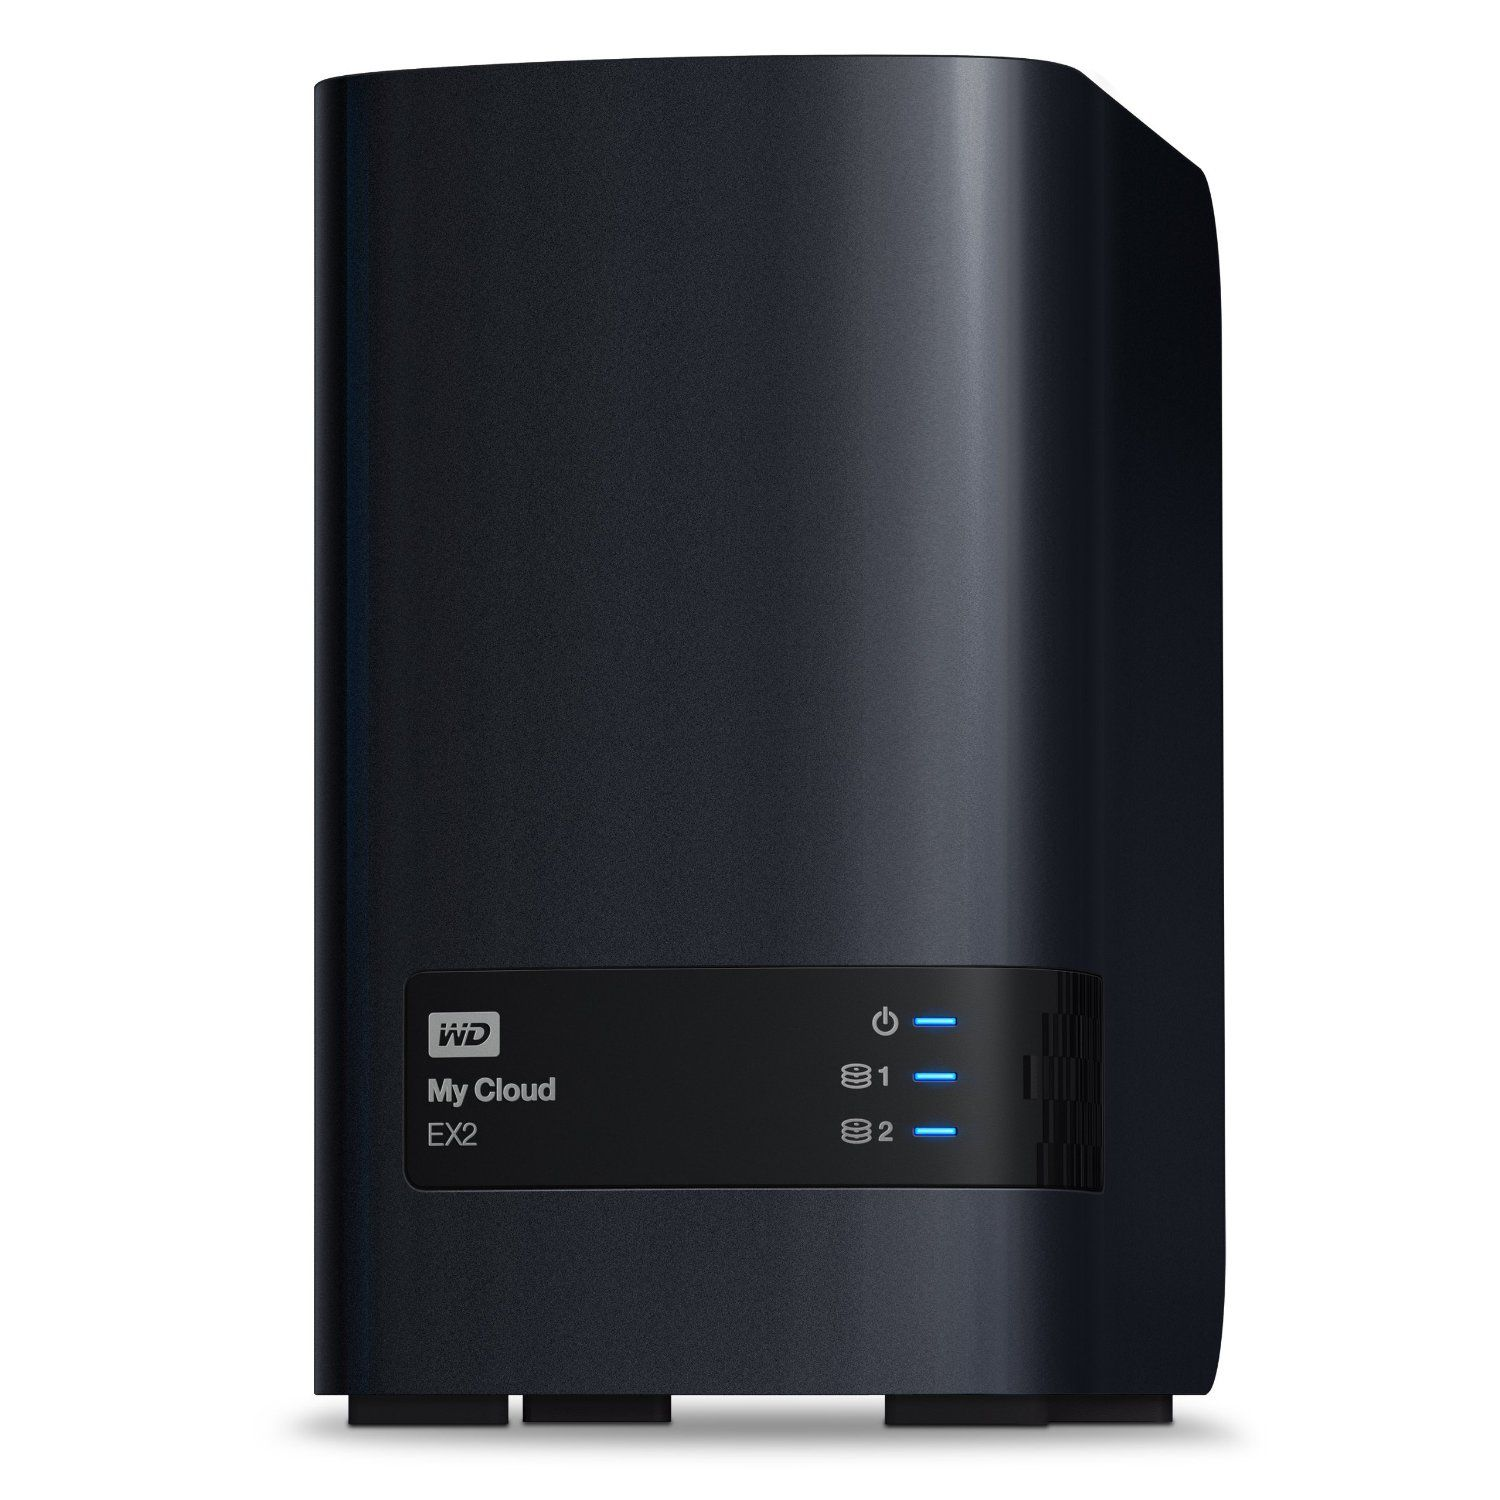 Amazon Com Wd My Cloud Ex2 6 Tb Pre Configured Network Attached Storage Featuring Wd Red Drives Computers Accessories Amazone Ram